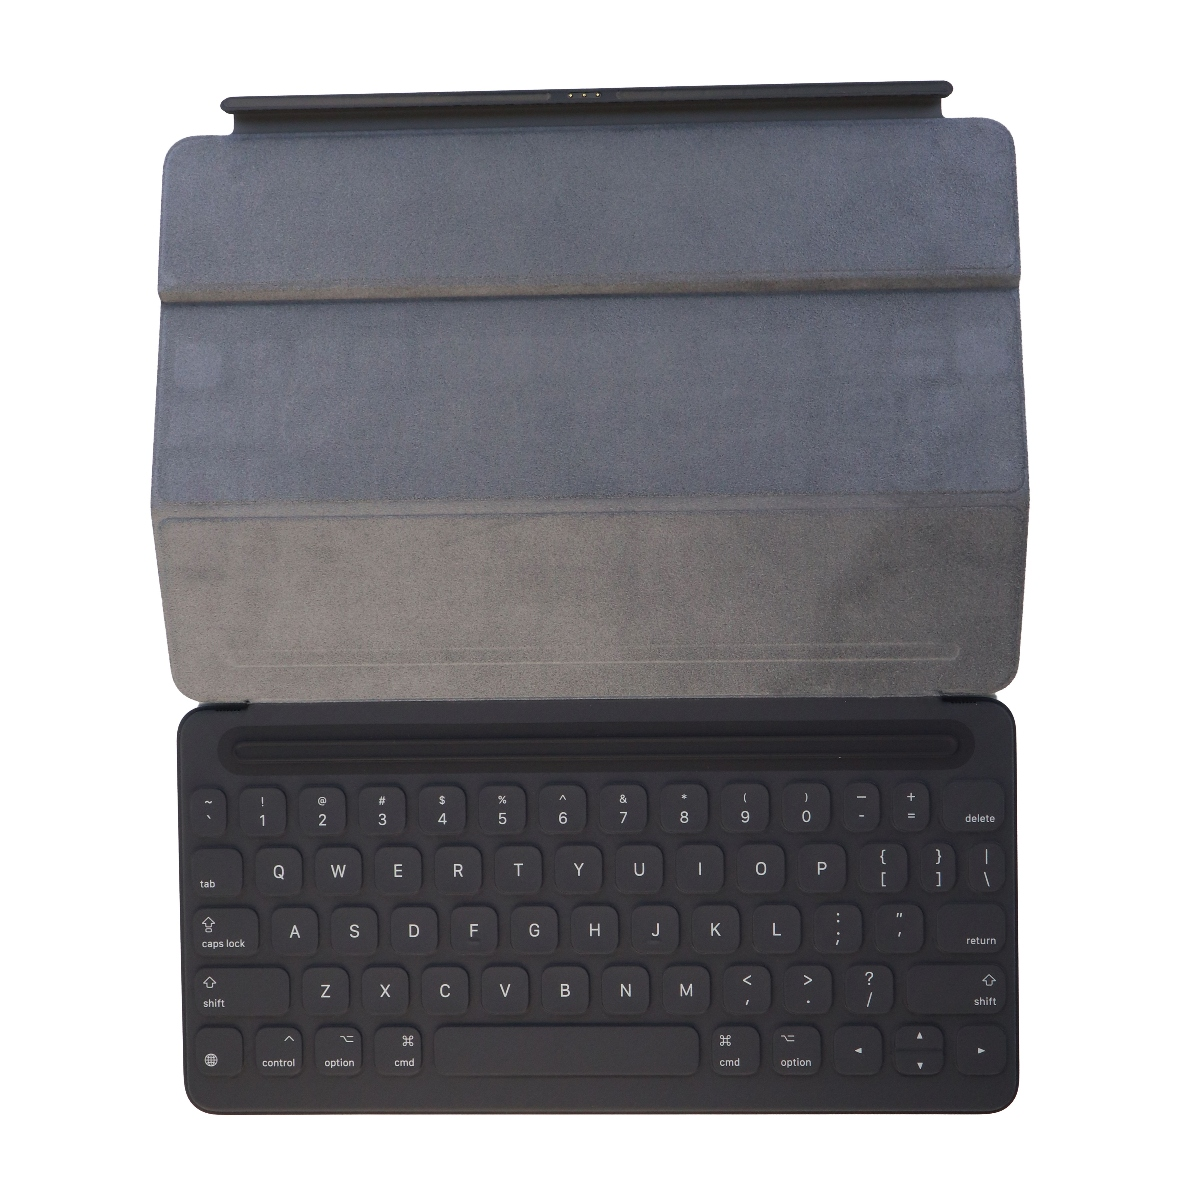 Official Apple Smart Keyboard for iPad Pro 10.5 - Black (MPTL2LL/A)